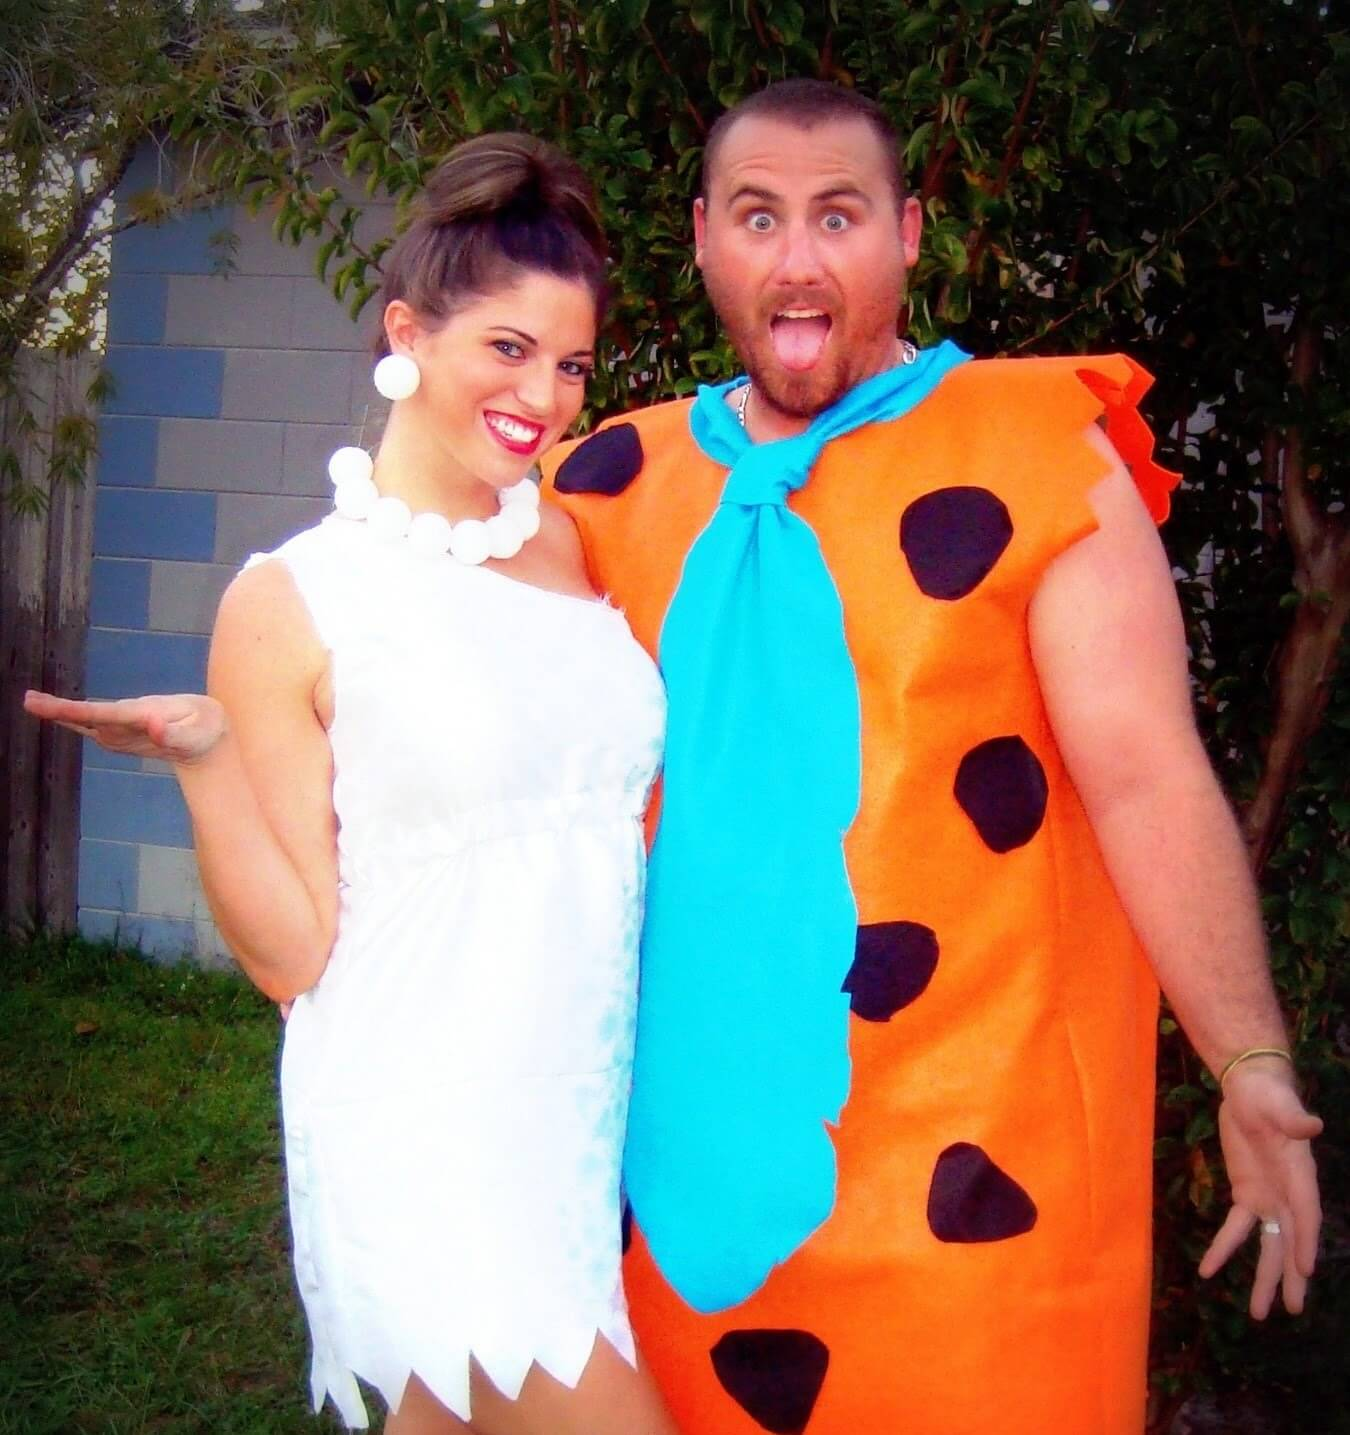 fleischer funny halloween costume for couple